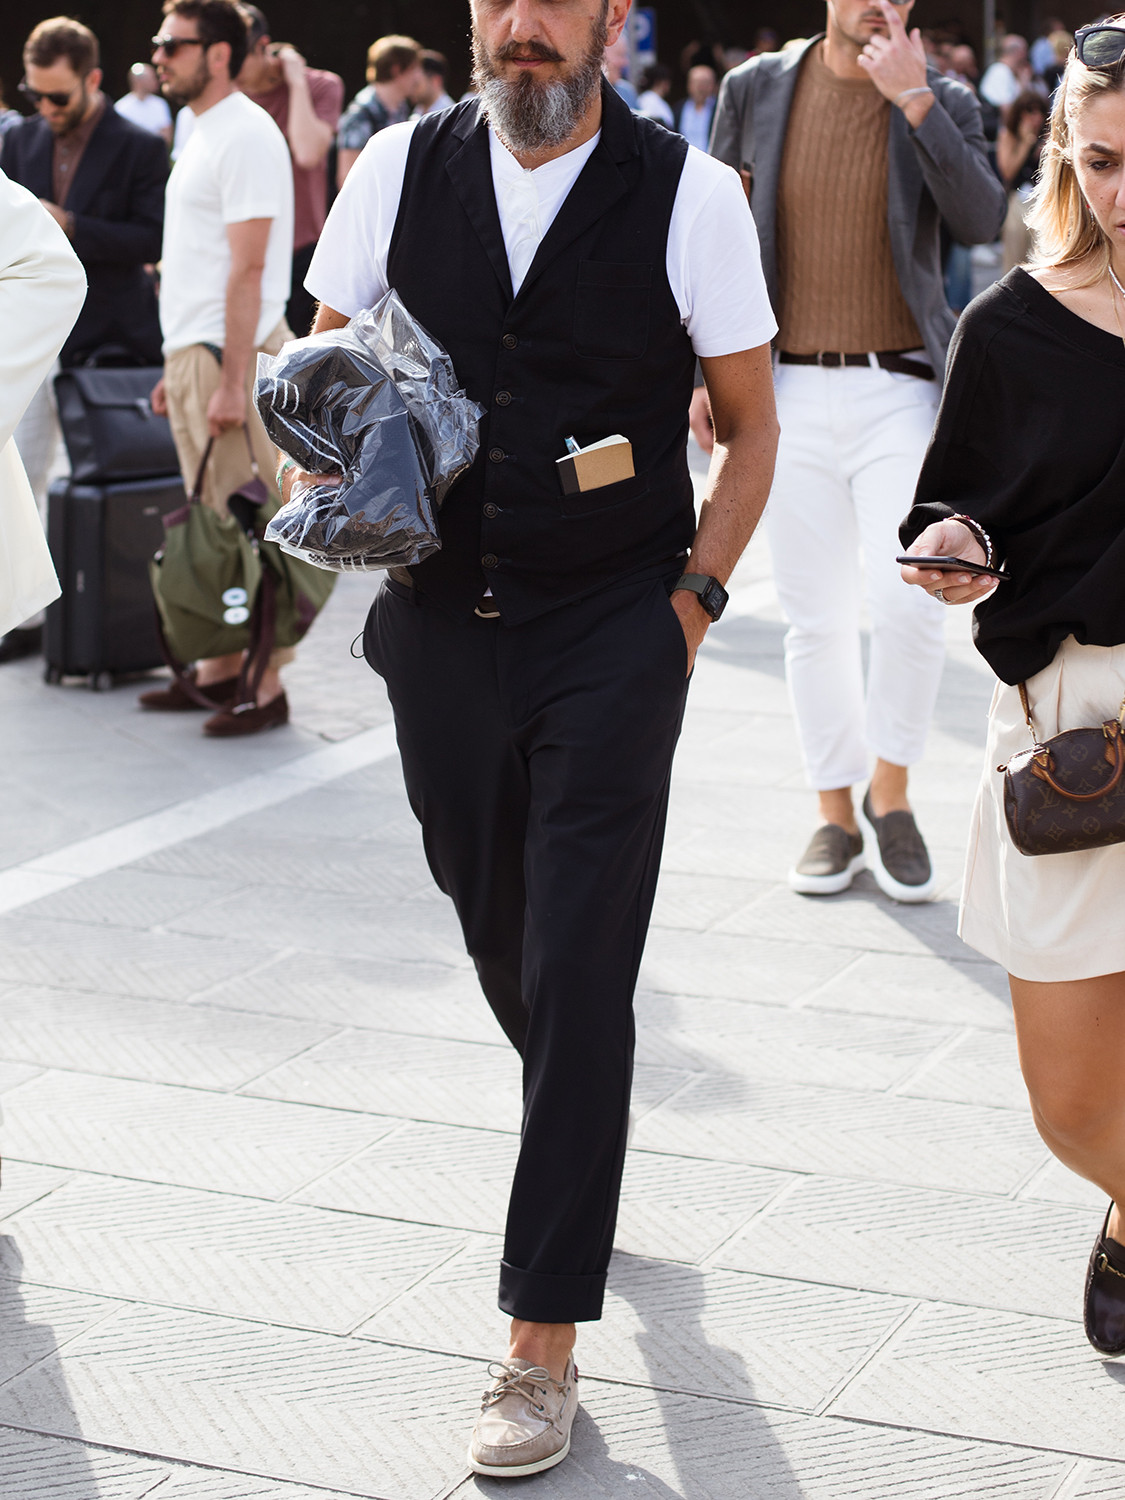 Men's outfit idea for 2021 with black waistcoat, white crew neck t-shirt, black plain formal trousers, grey boat shoes. Suitable for spring and summer.